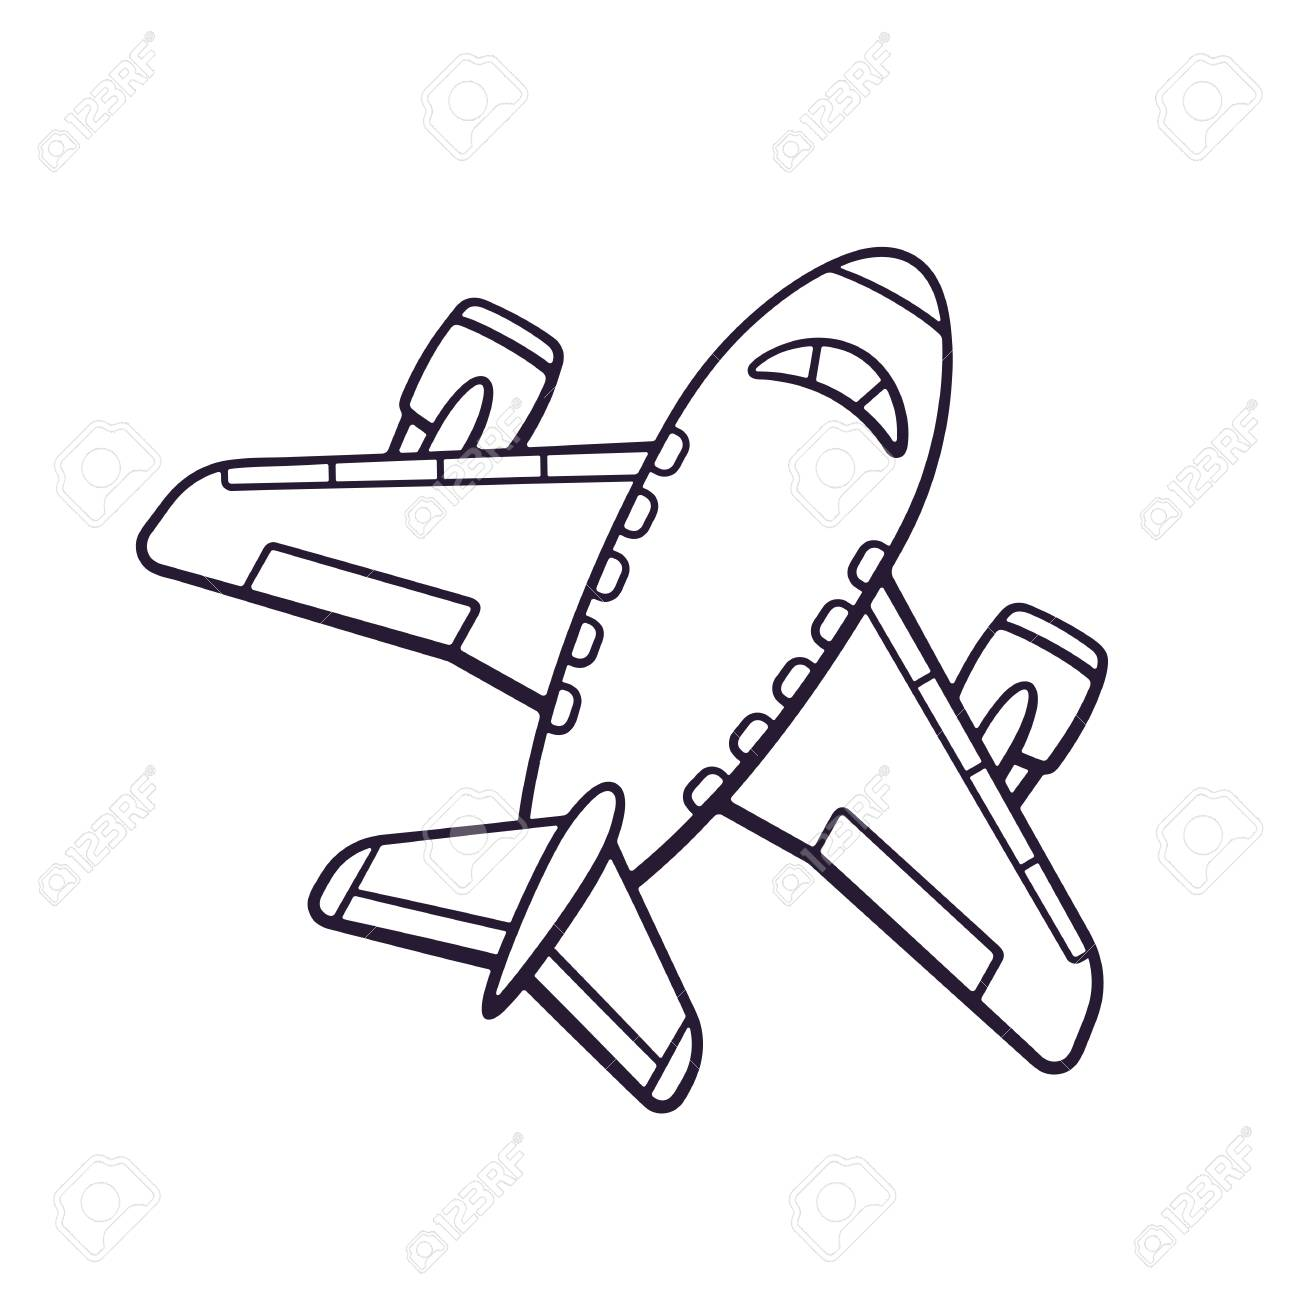 Hand Drawn Doodle Of Toy Plane Travel By Airplane Transport Cartoon Sketch Isolated On White Background